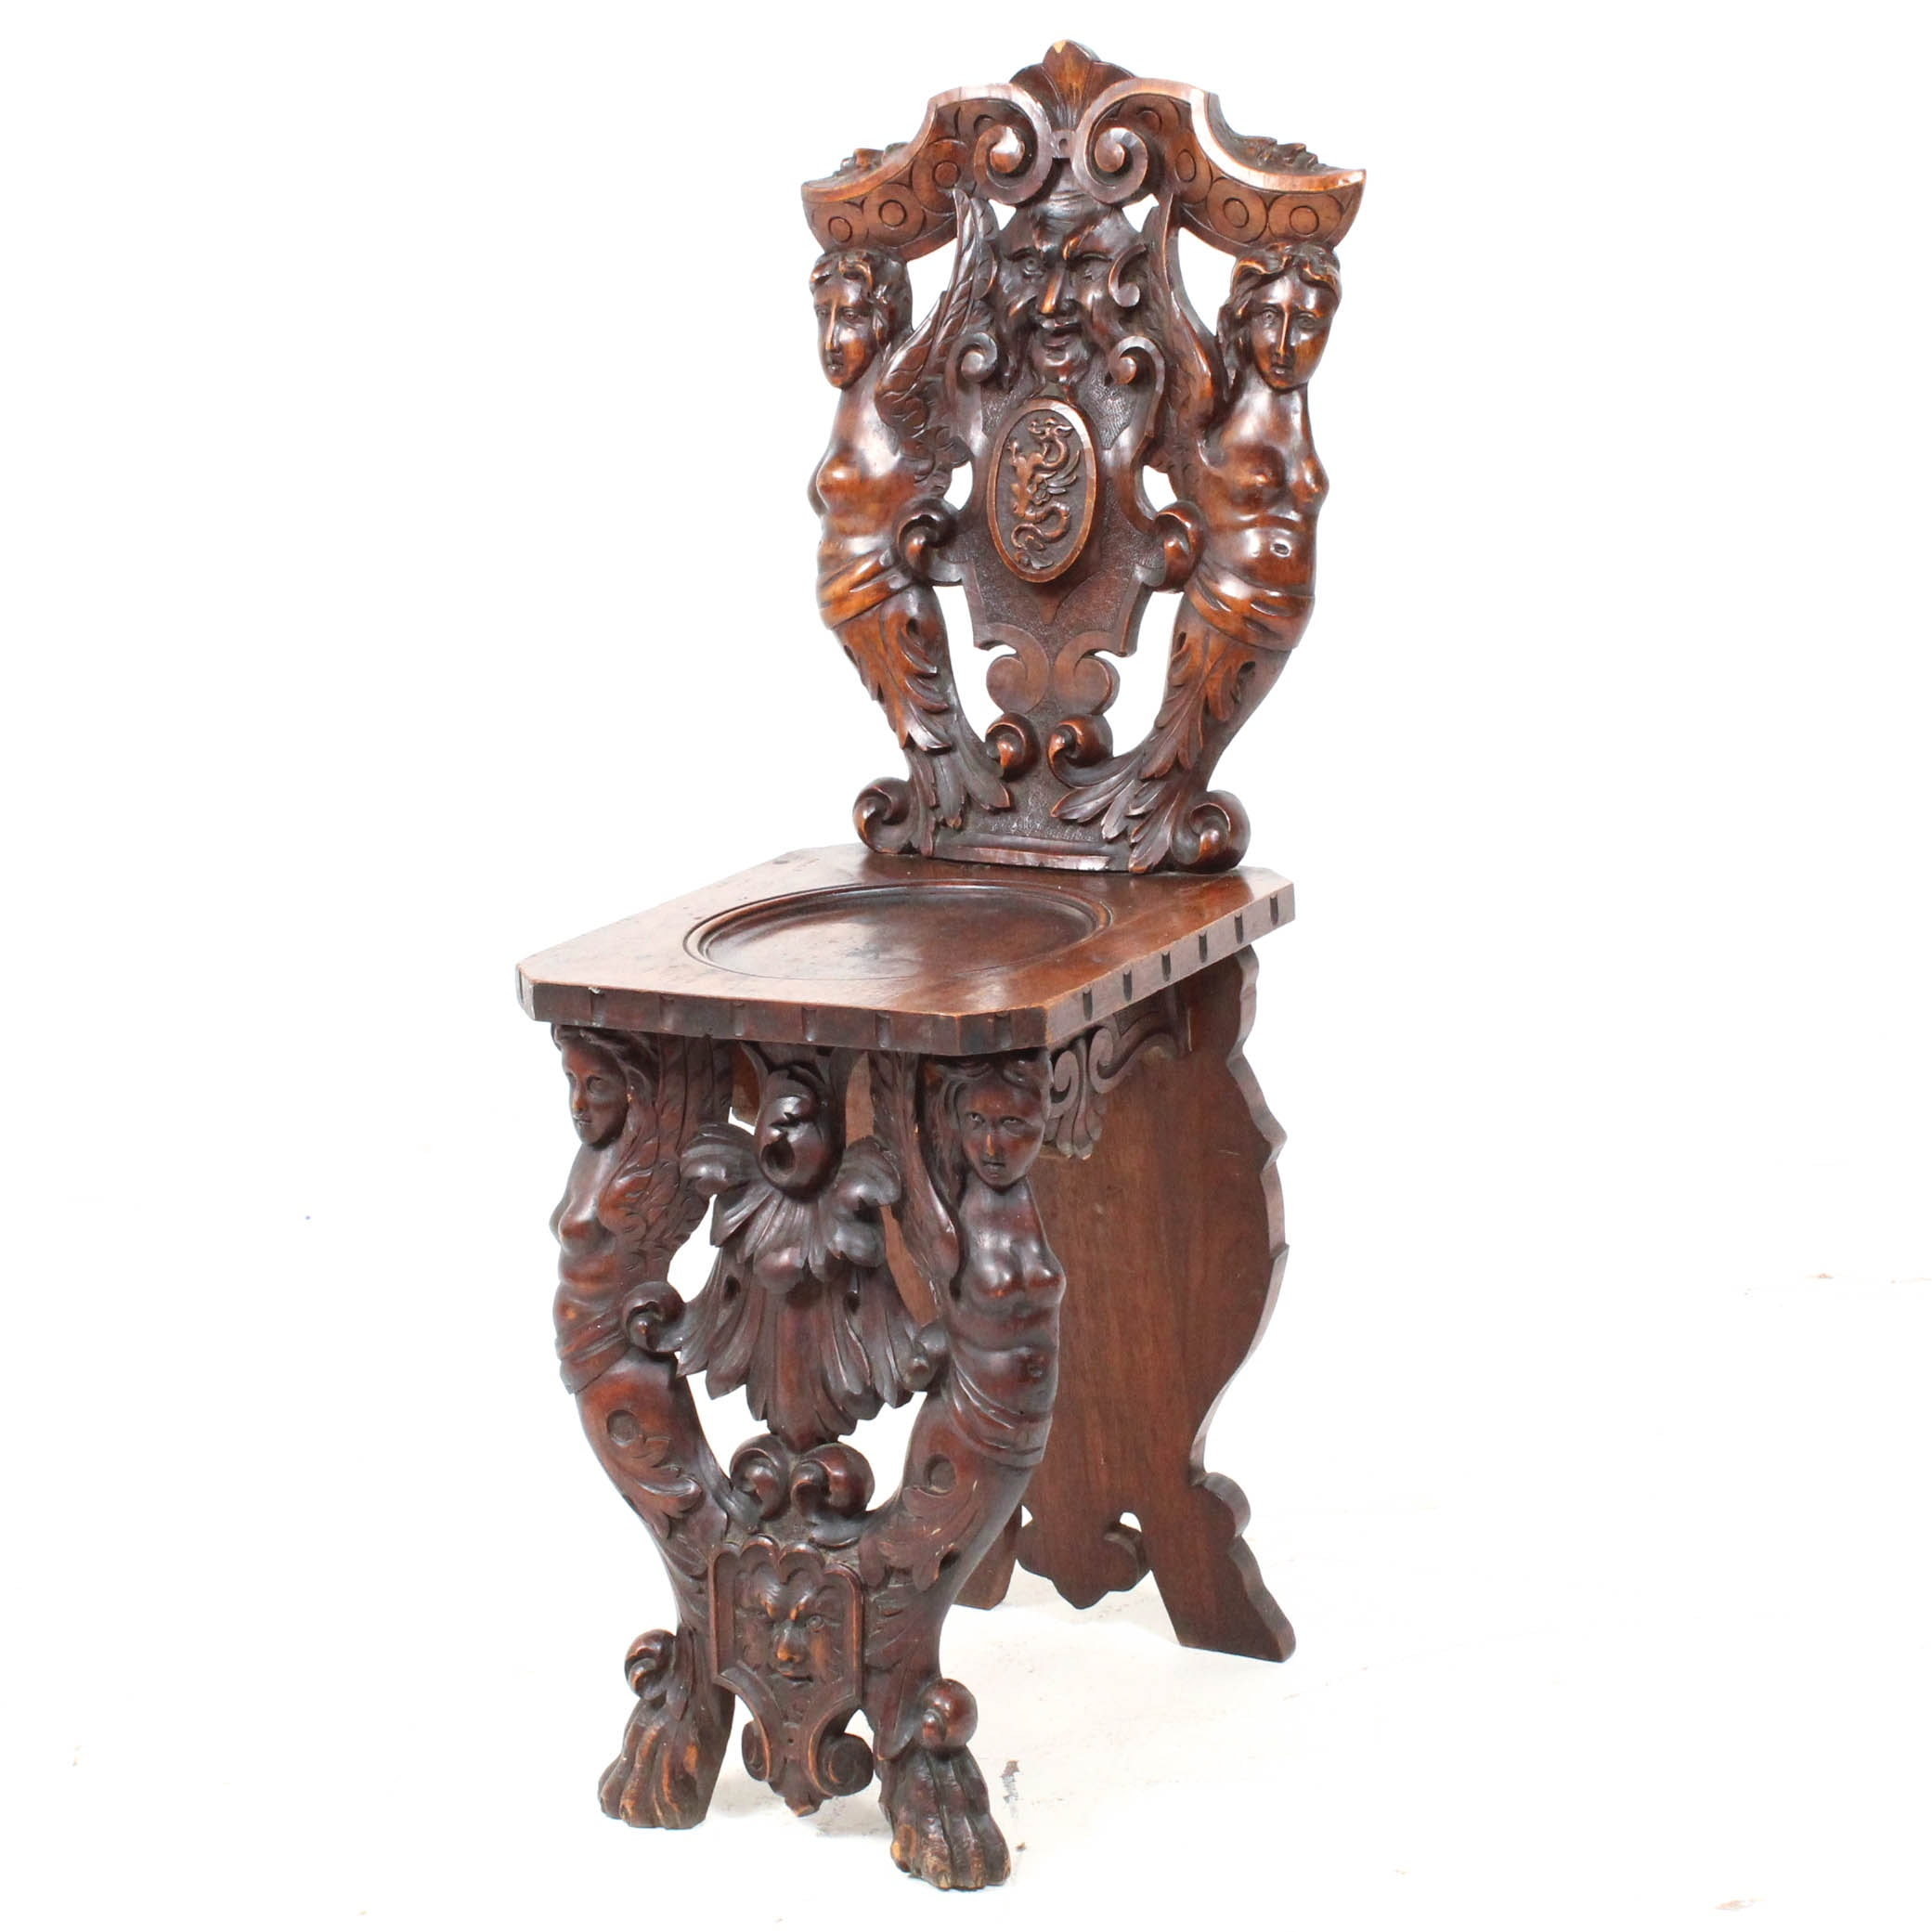 Antique Renaissance Revival Sgabello Chair in Walnut